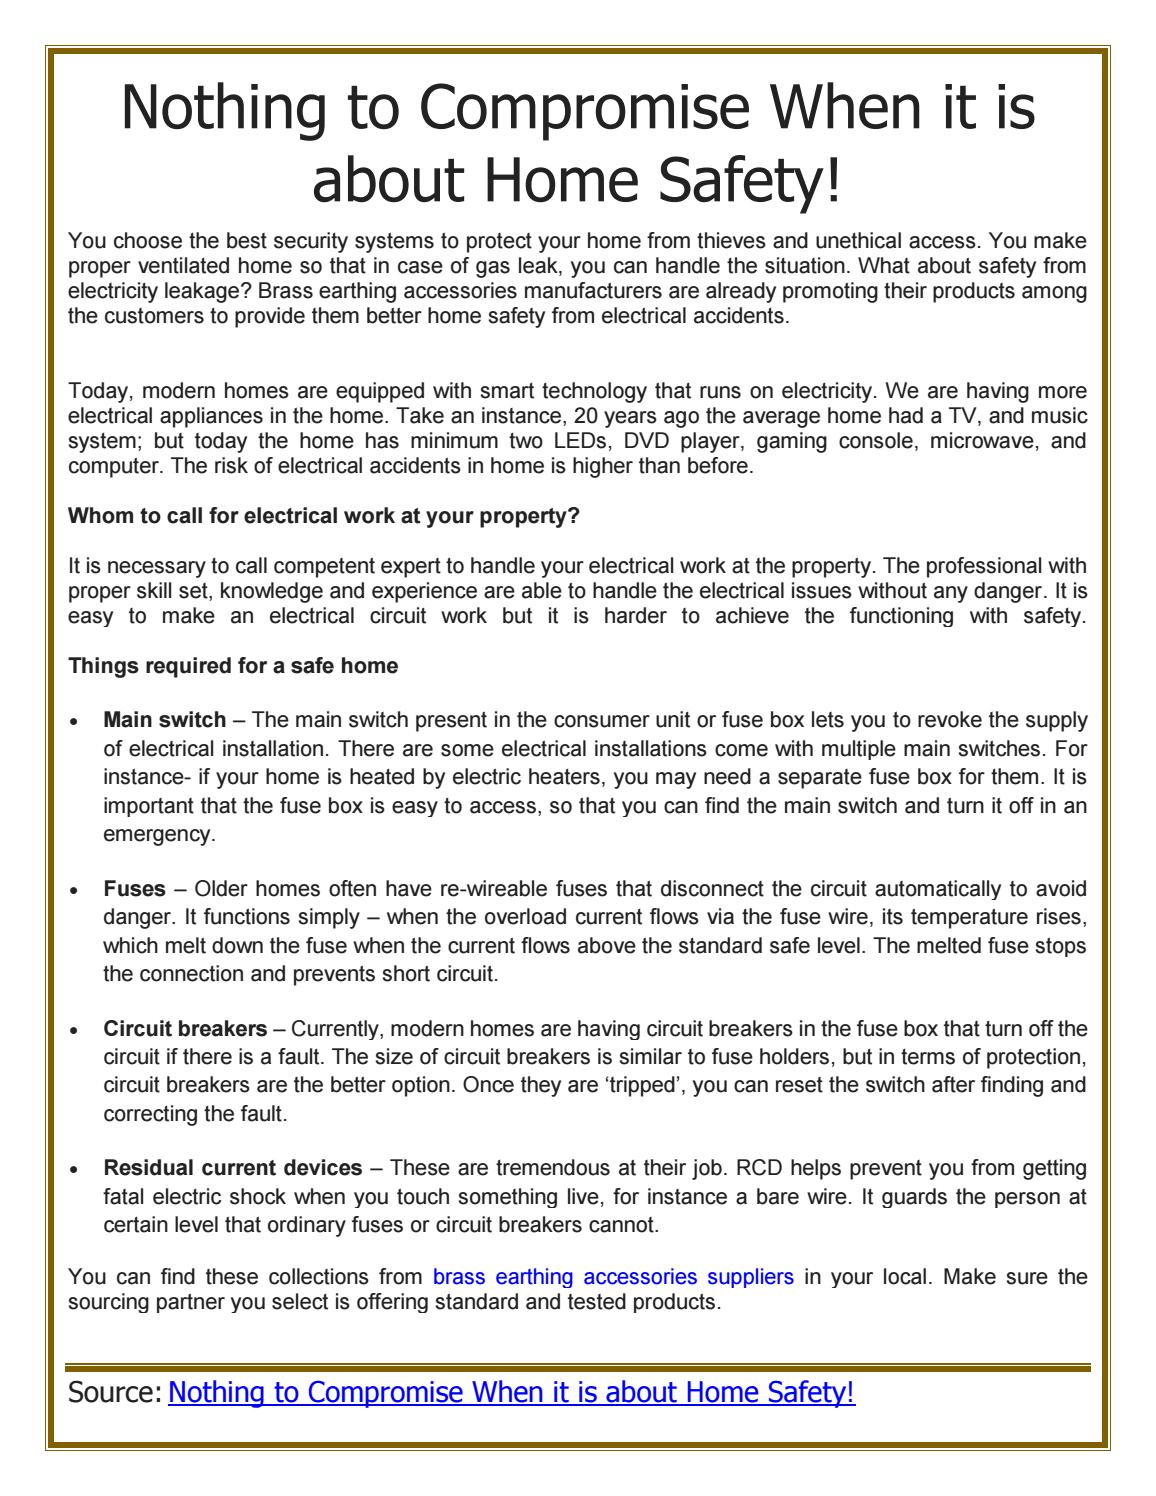 Nothing To Compromise When It Is About Home Safety By Pallega Issuu Electrical Fuse Box